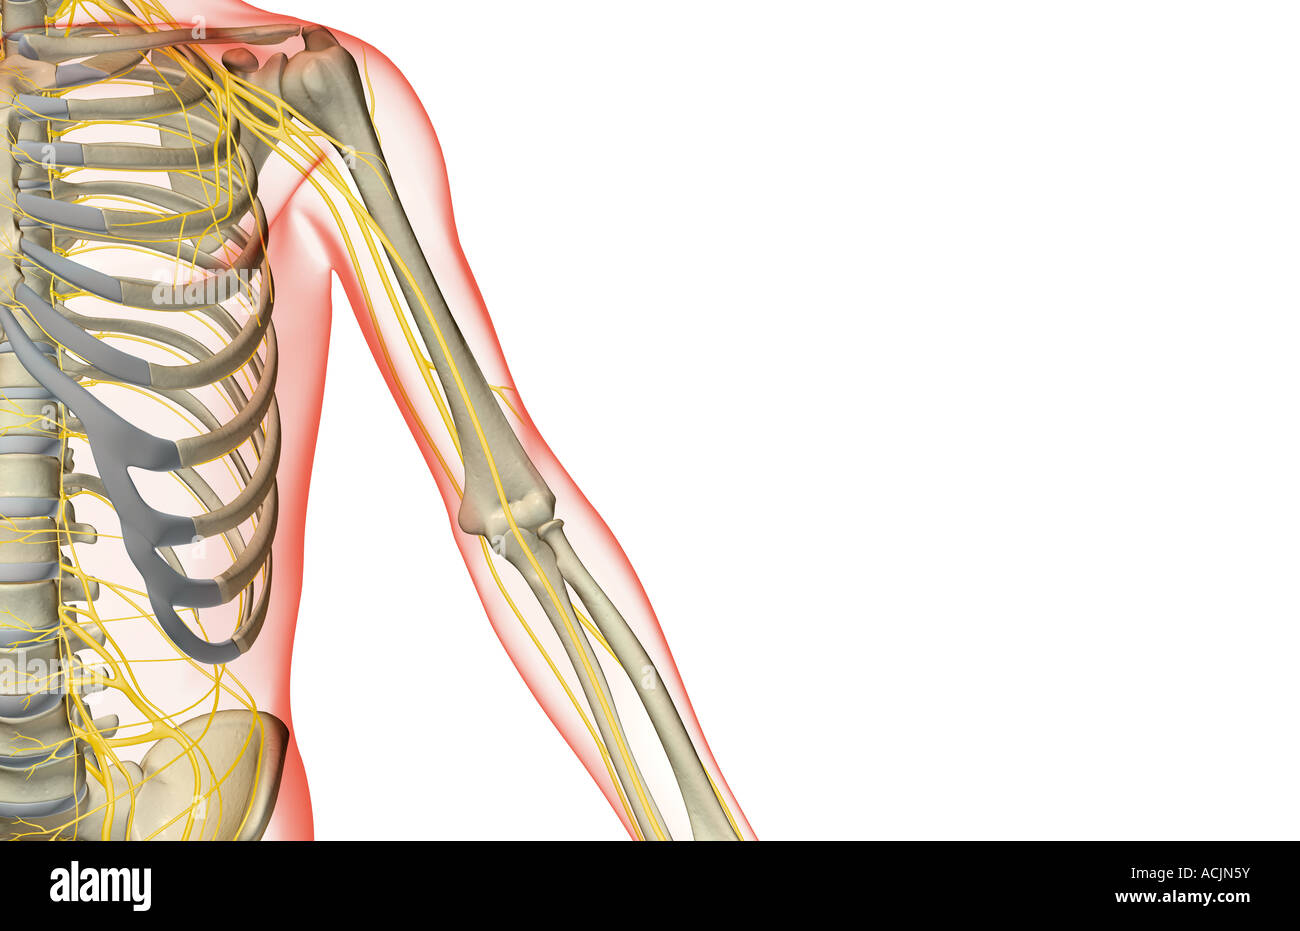 The nerves of the upper limb Stock Photo: 13172054 - Alamy